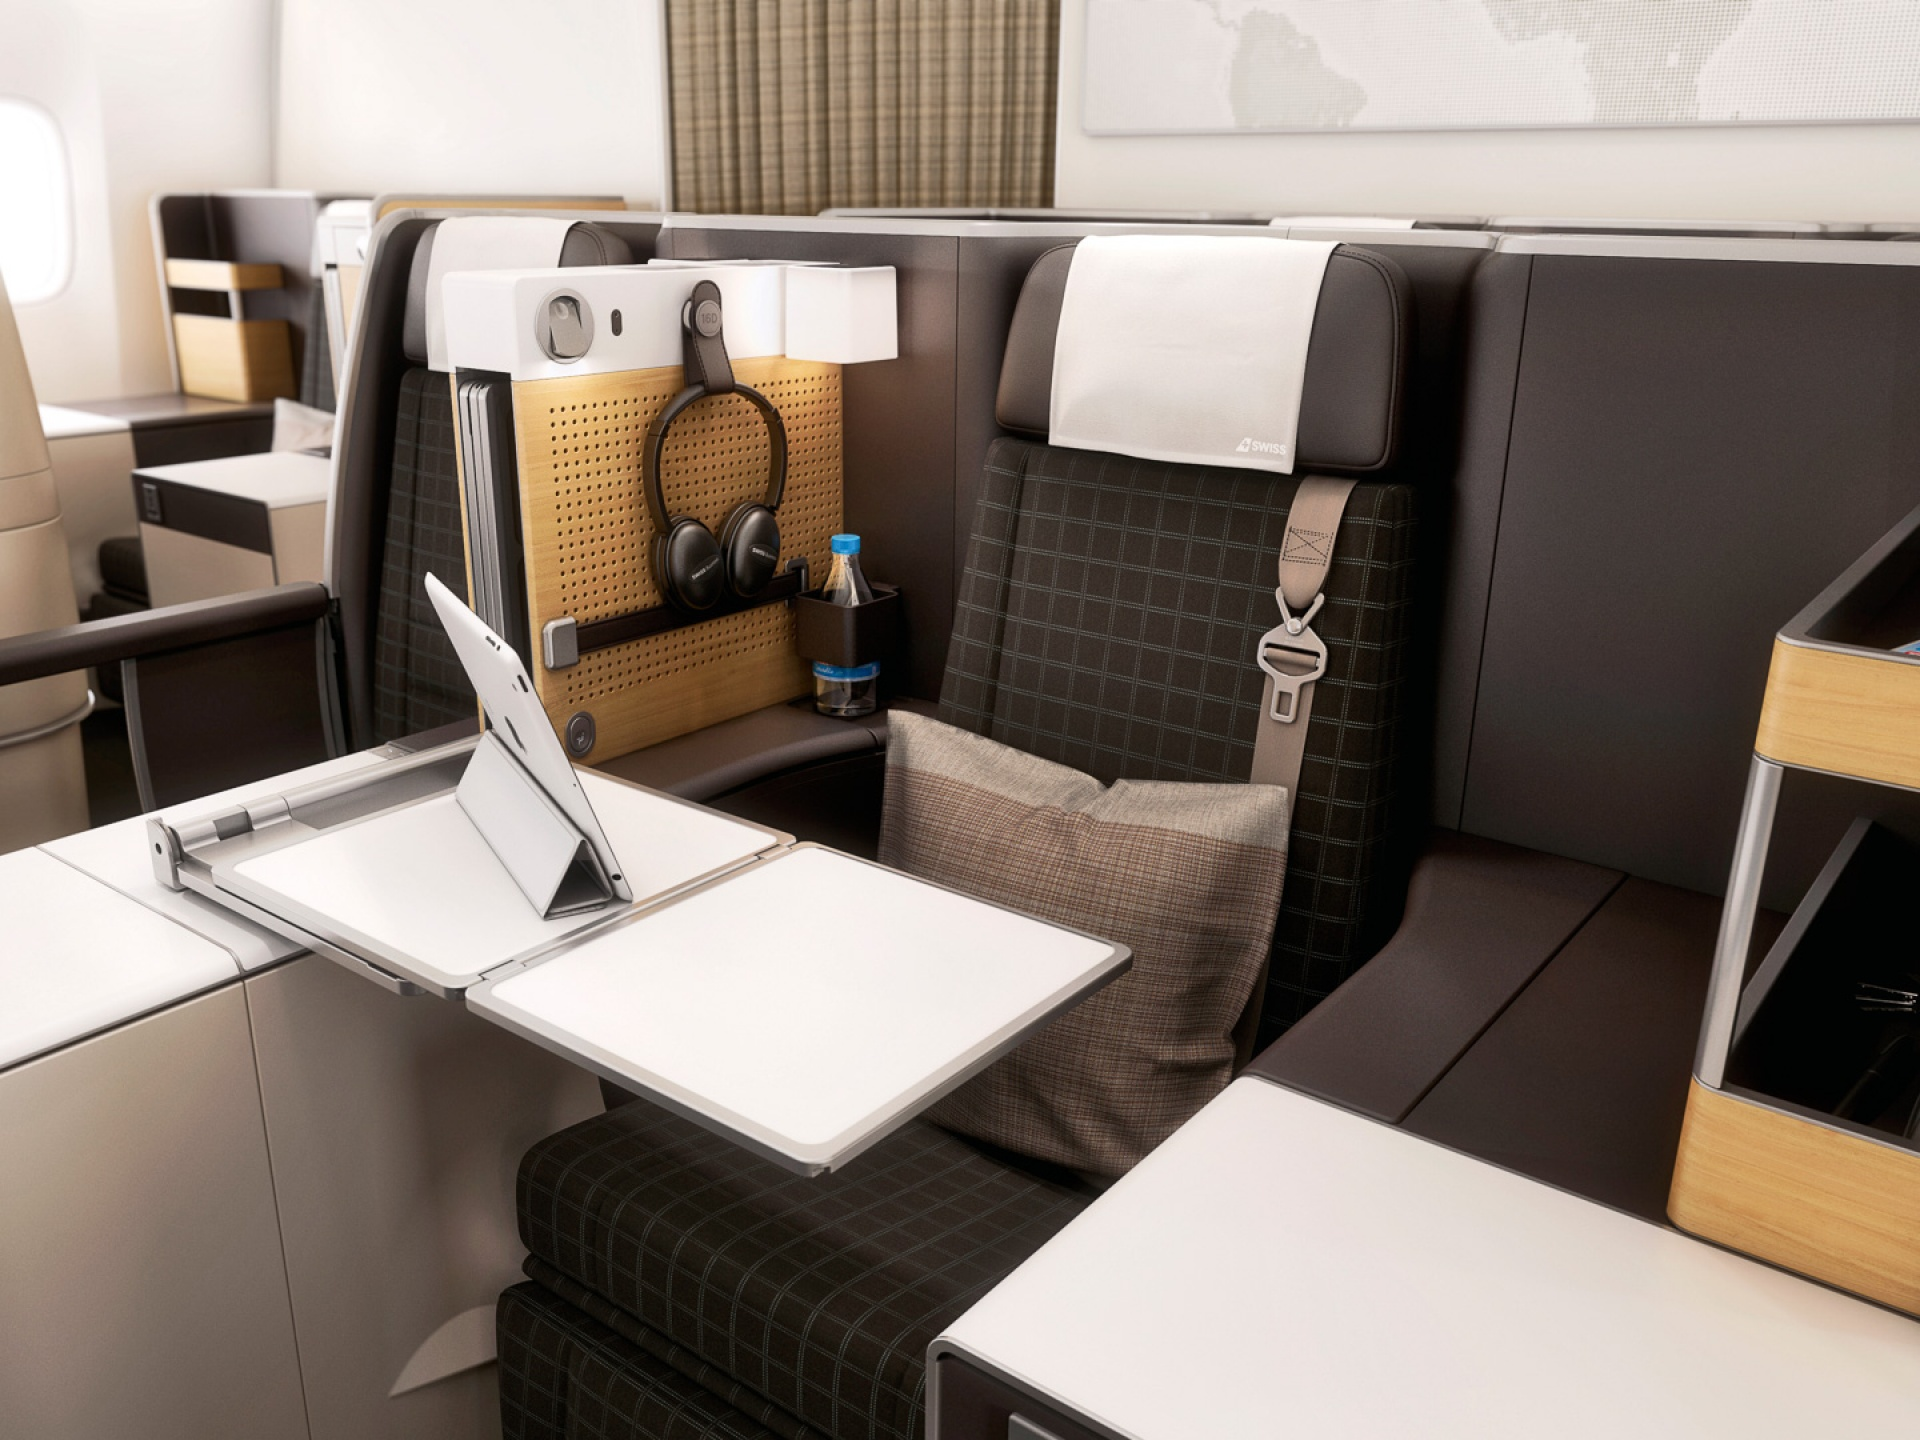 Swiss Business Class: Pay $149-$199 to Select a Good Seat